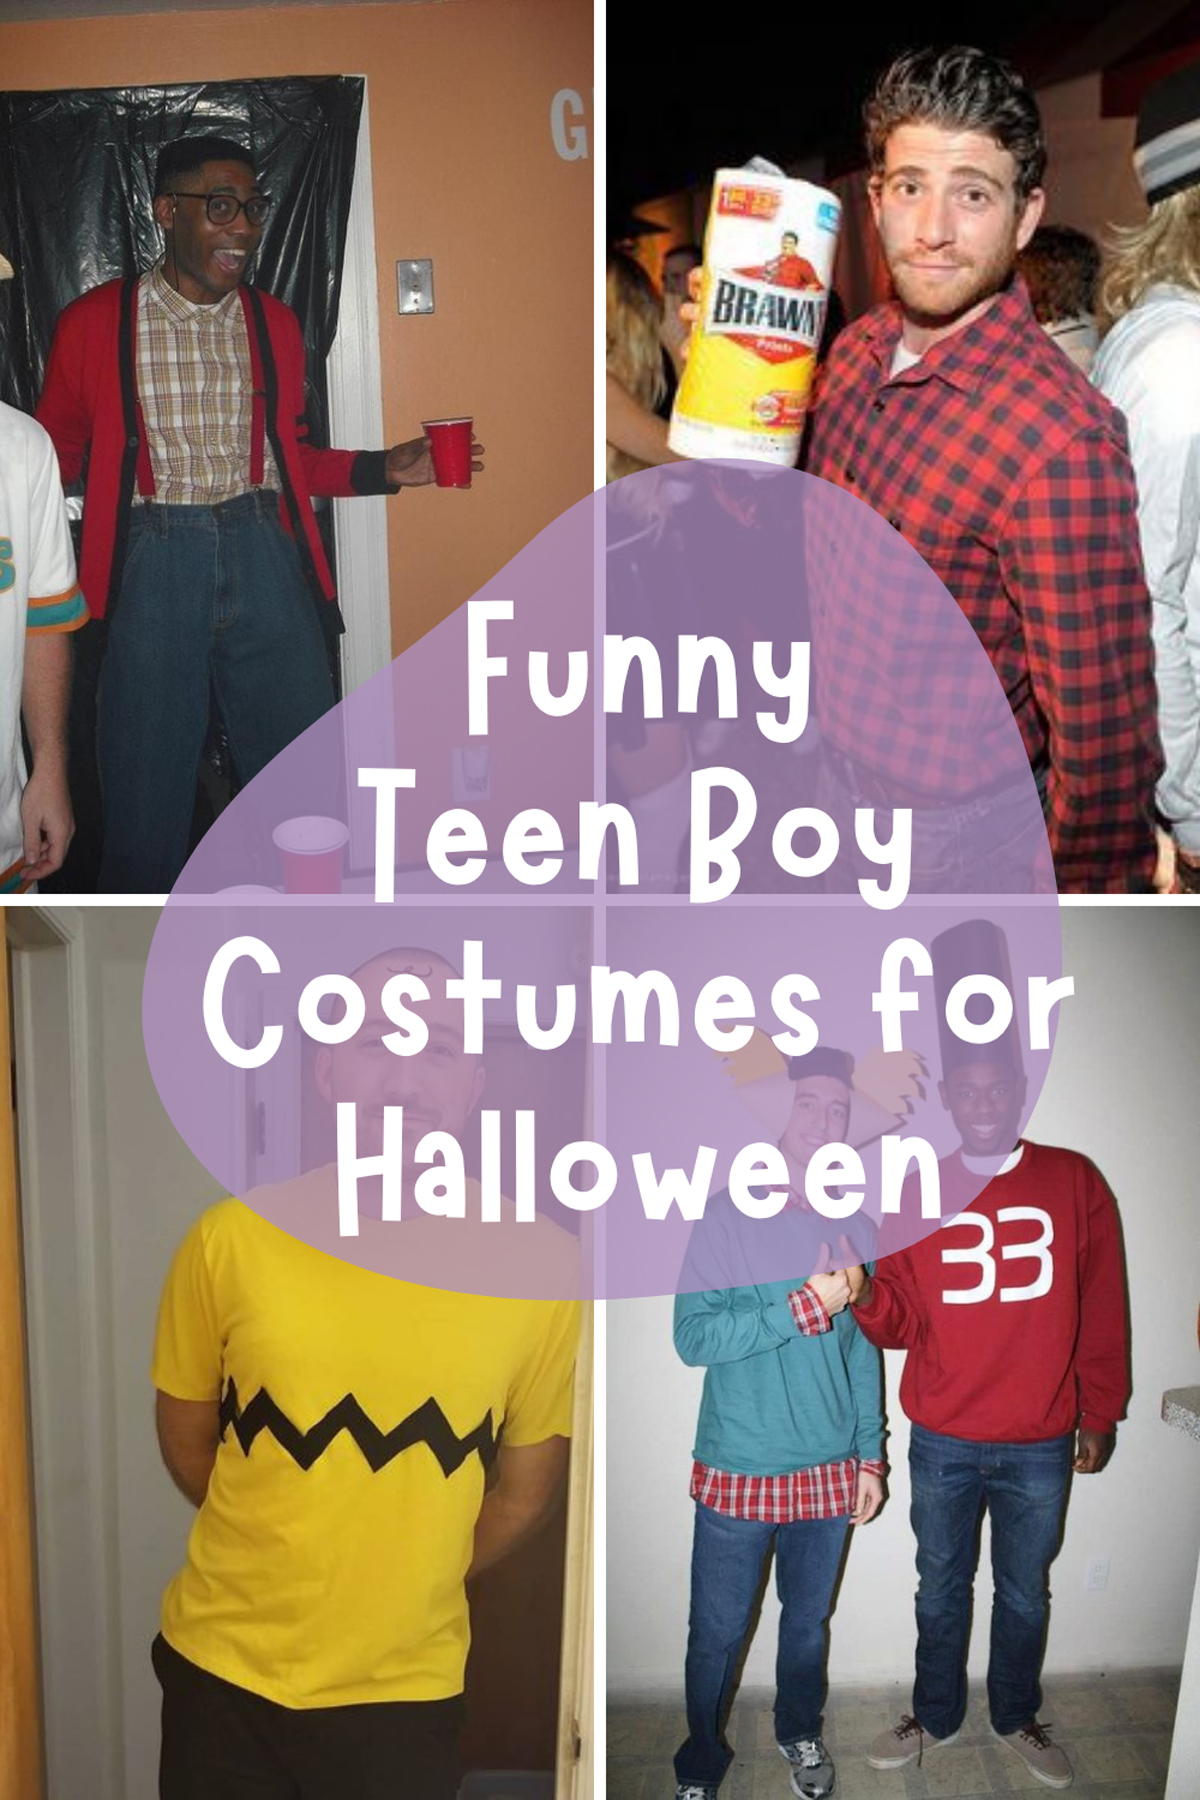 Funny Teen Boy Costumes for Halloween